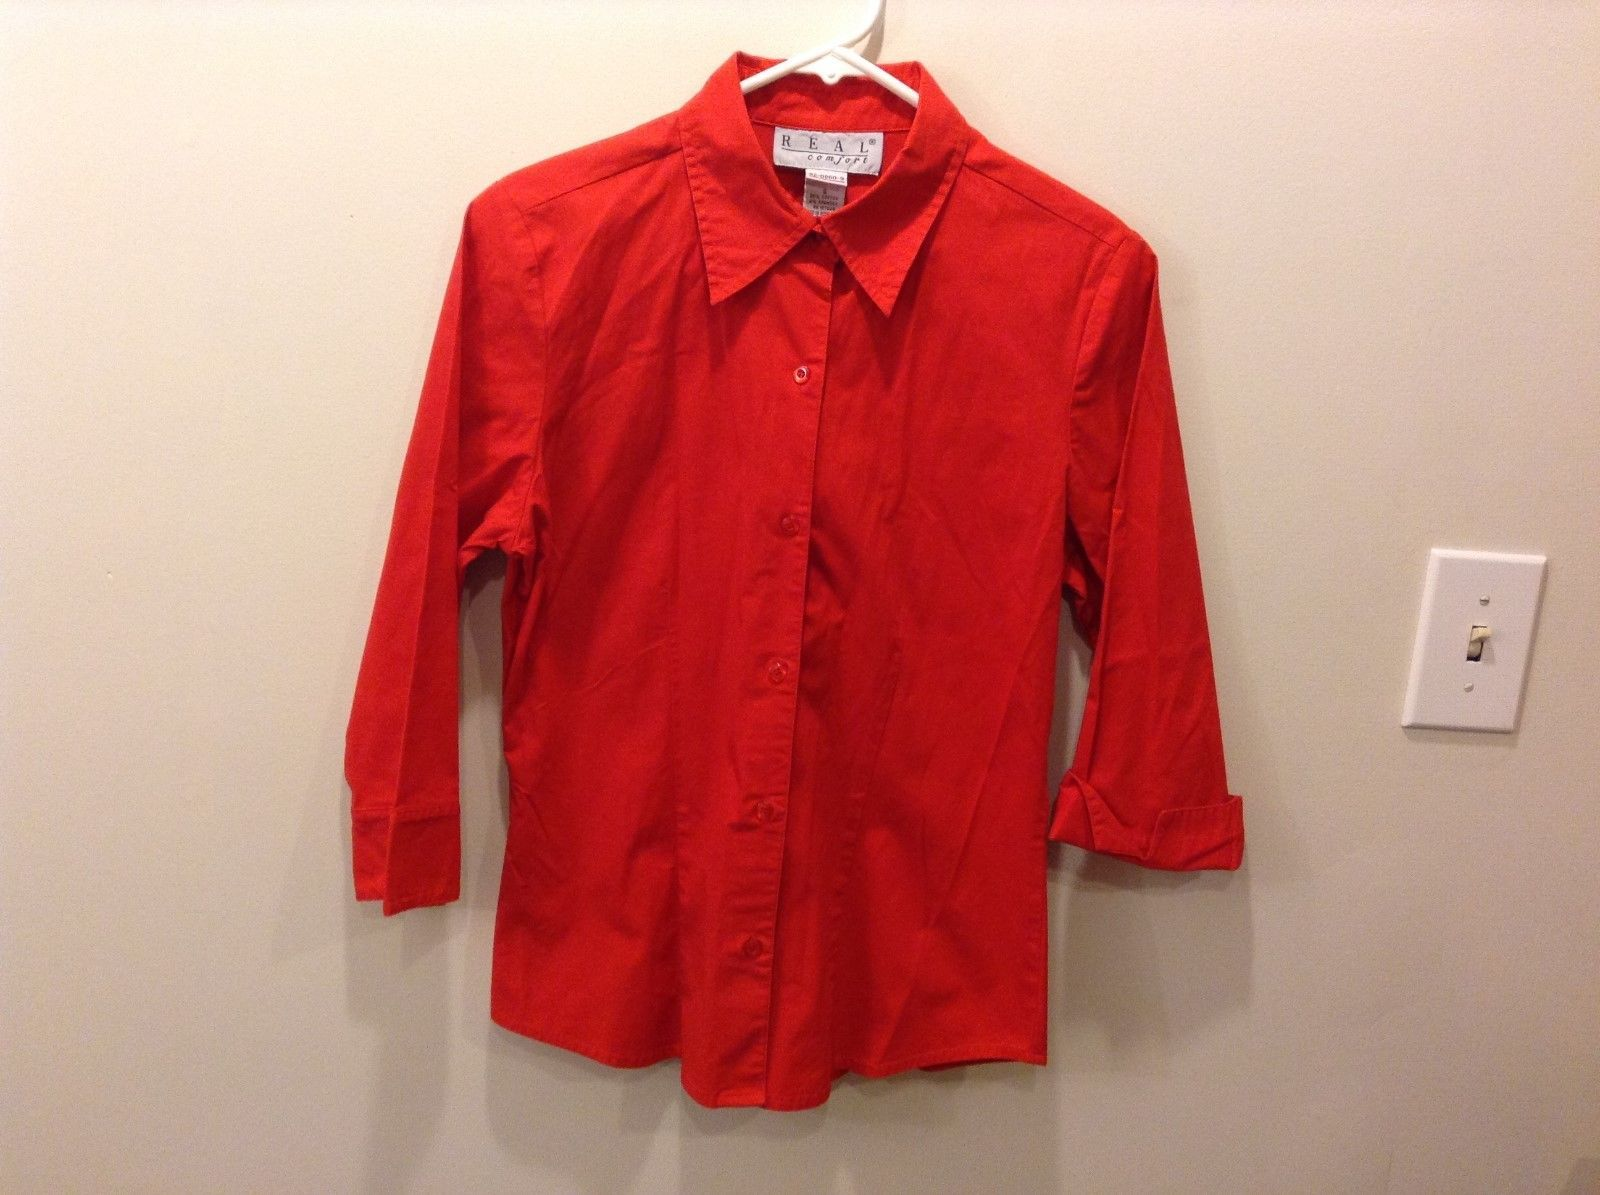 Women's REAL Comfort Bright Red 3/4 Sleeve Button Up Shirt Size S